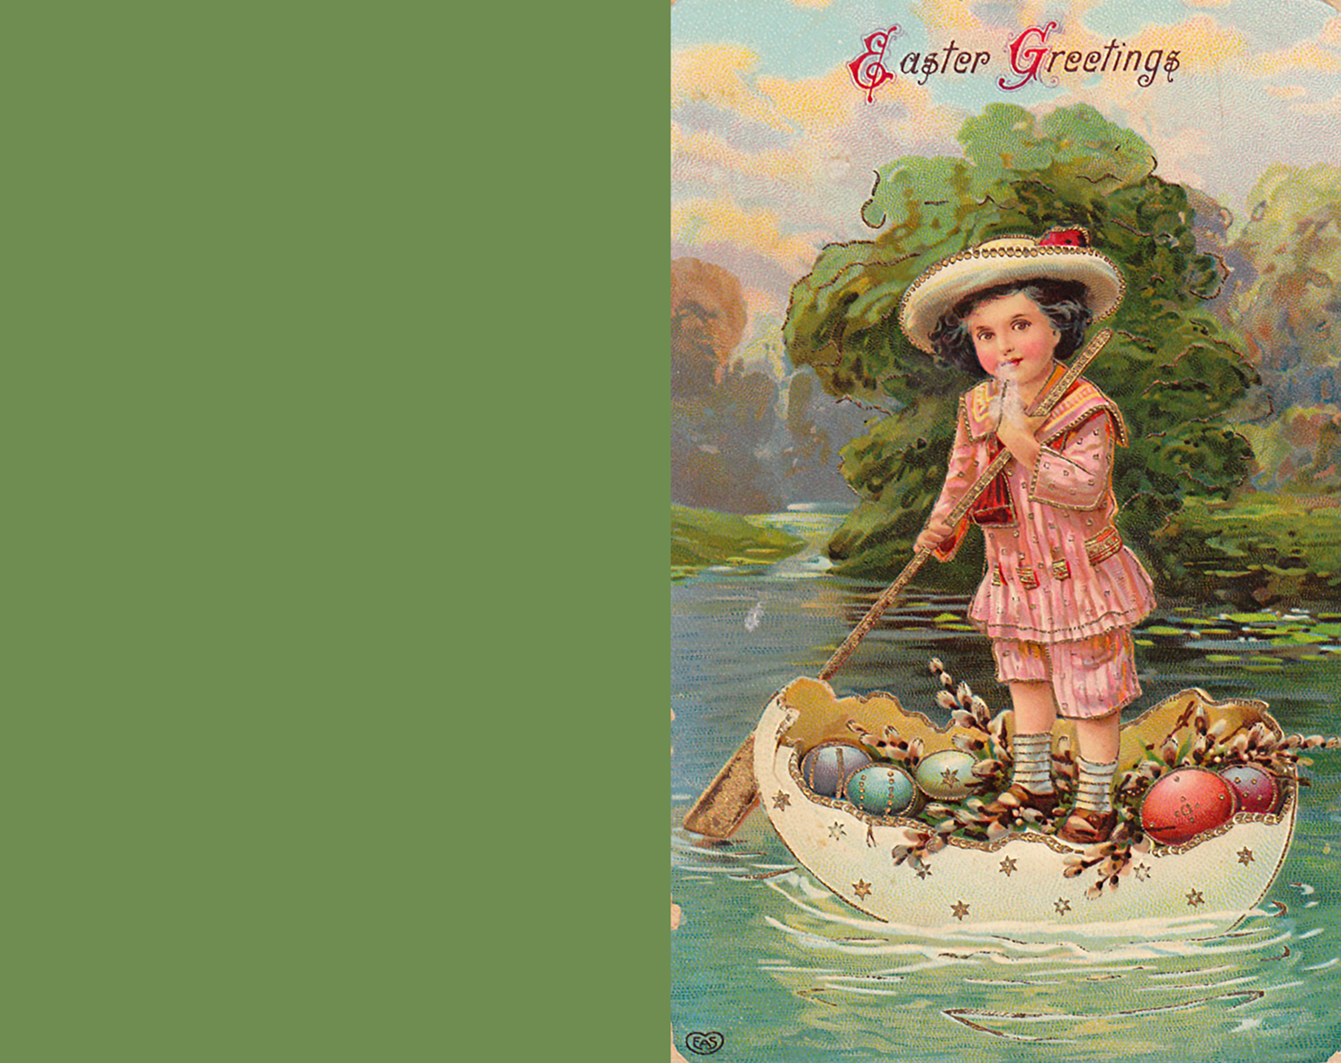 Adorable Easter greeting card with little boy on a river.